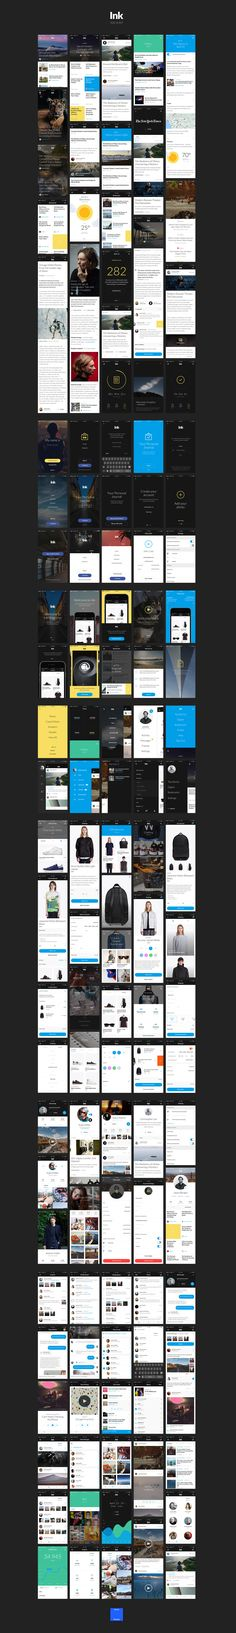 Ink UI Kit - 150 iOS screens by Great Simple on Creative Market